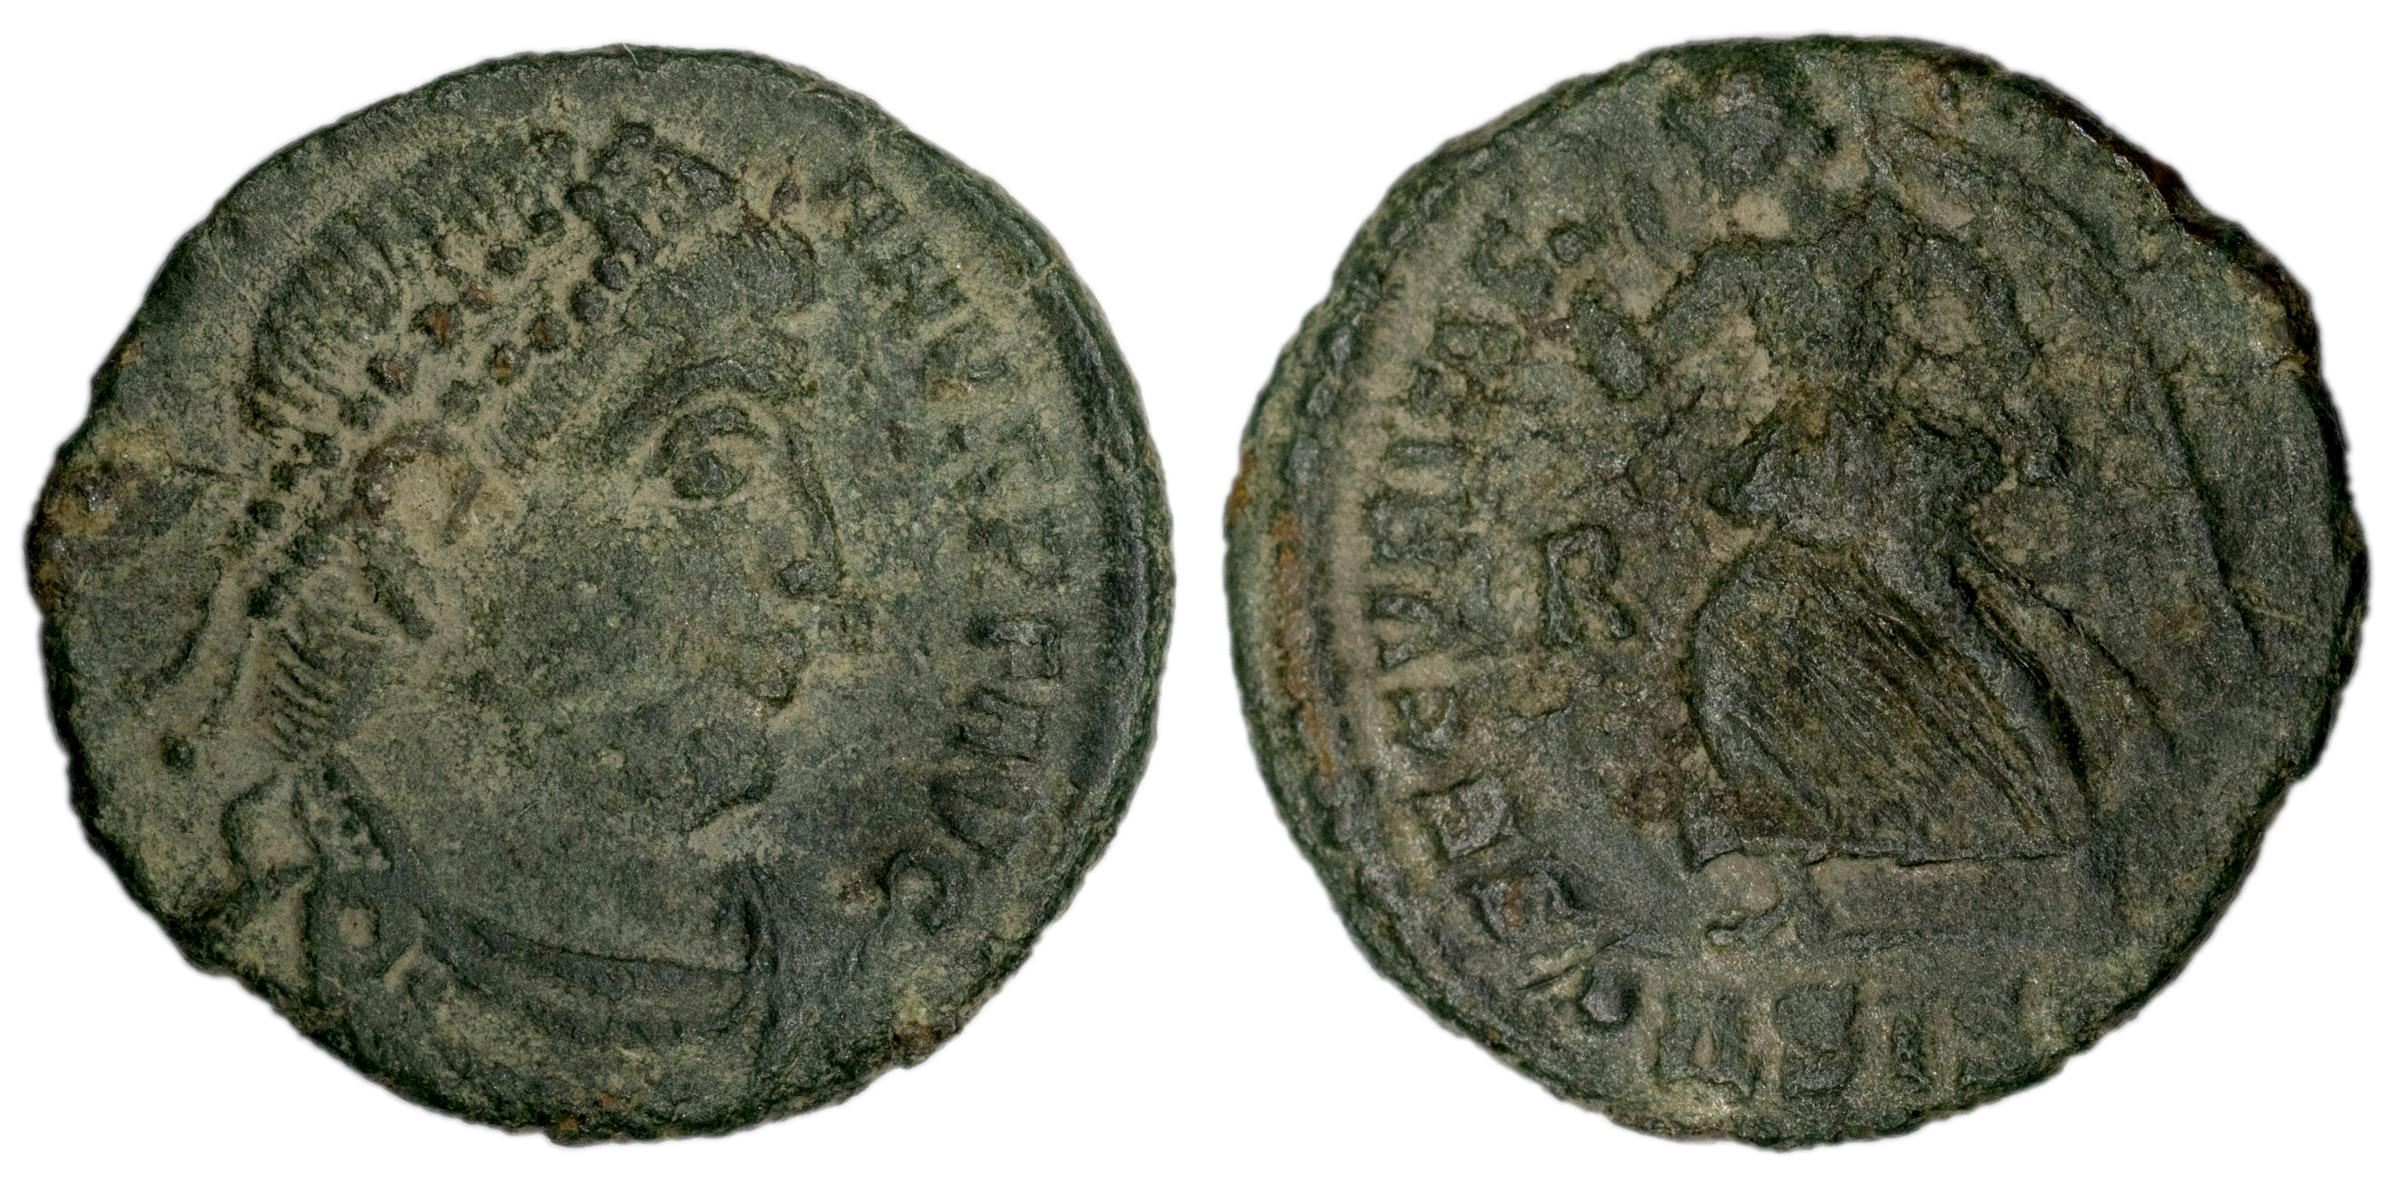 /Files/Images/Coinsite/CoinDB/Valentinianus4.jpg